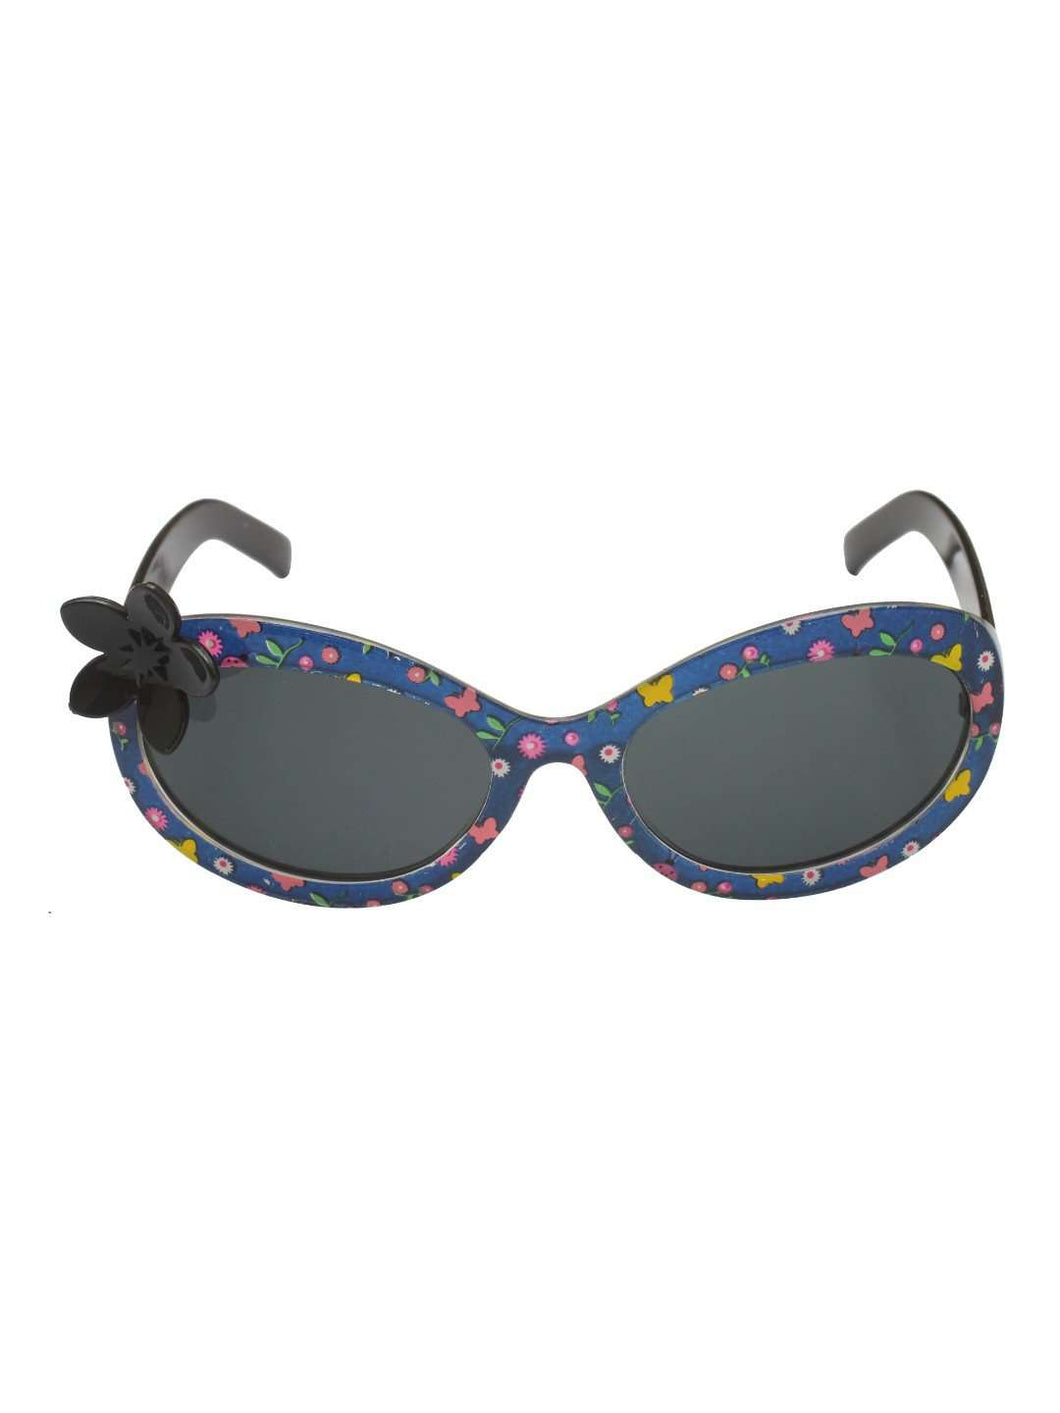 Stol'n Kids Black Printed Flower Applique Oval Sunglasses - SWHF